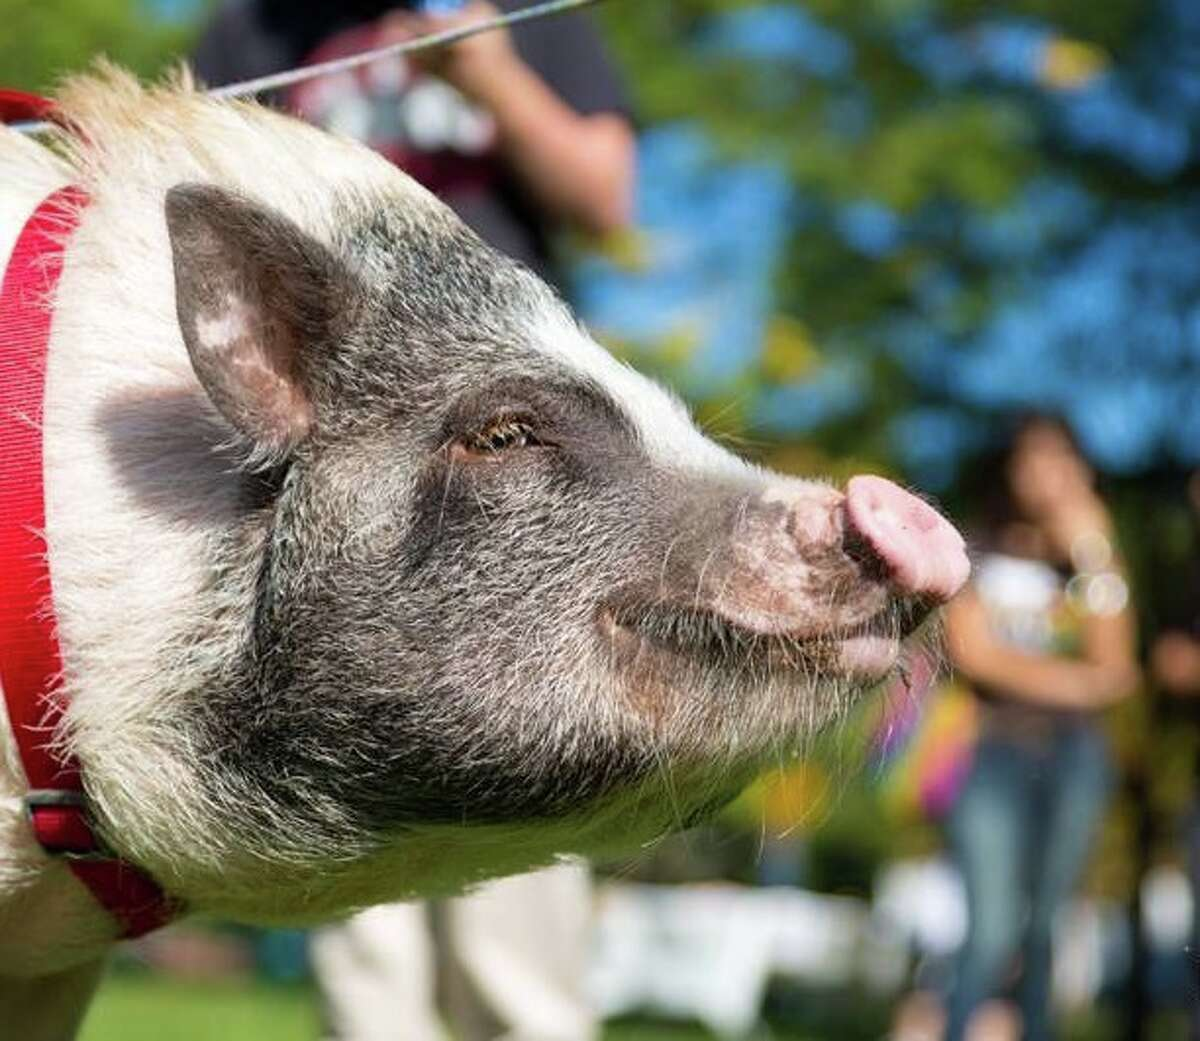 Hearst Connecticut HR business partner, Kate Evans' Potbelly Pig named Penny is 3.5 years old and 90 lbs of mischief. Pigs are the 4th smartest animal and she has the cognitive ability of a 3 year old human.